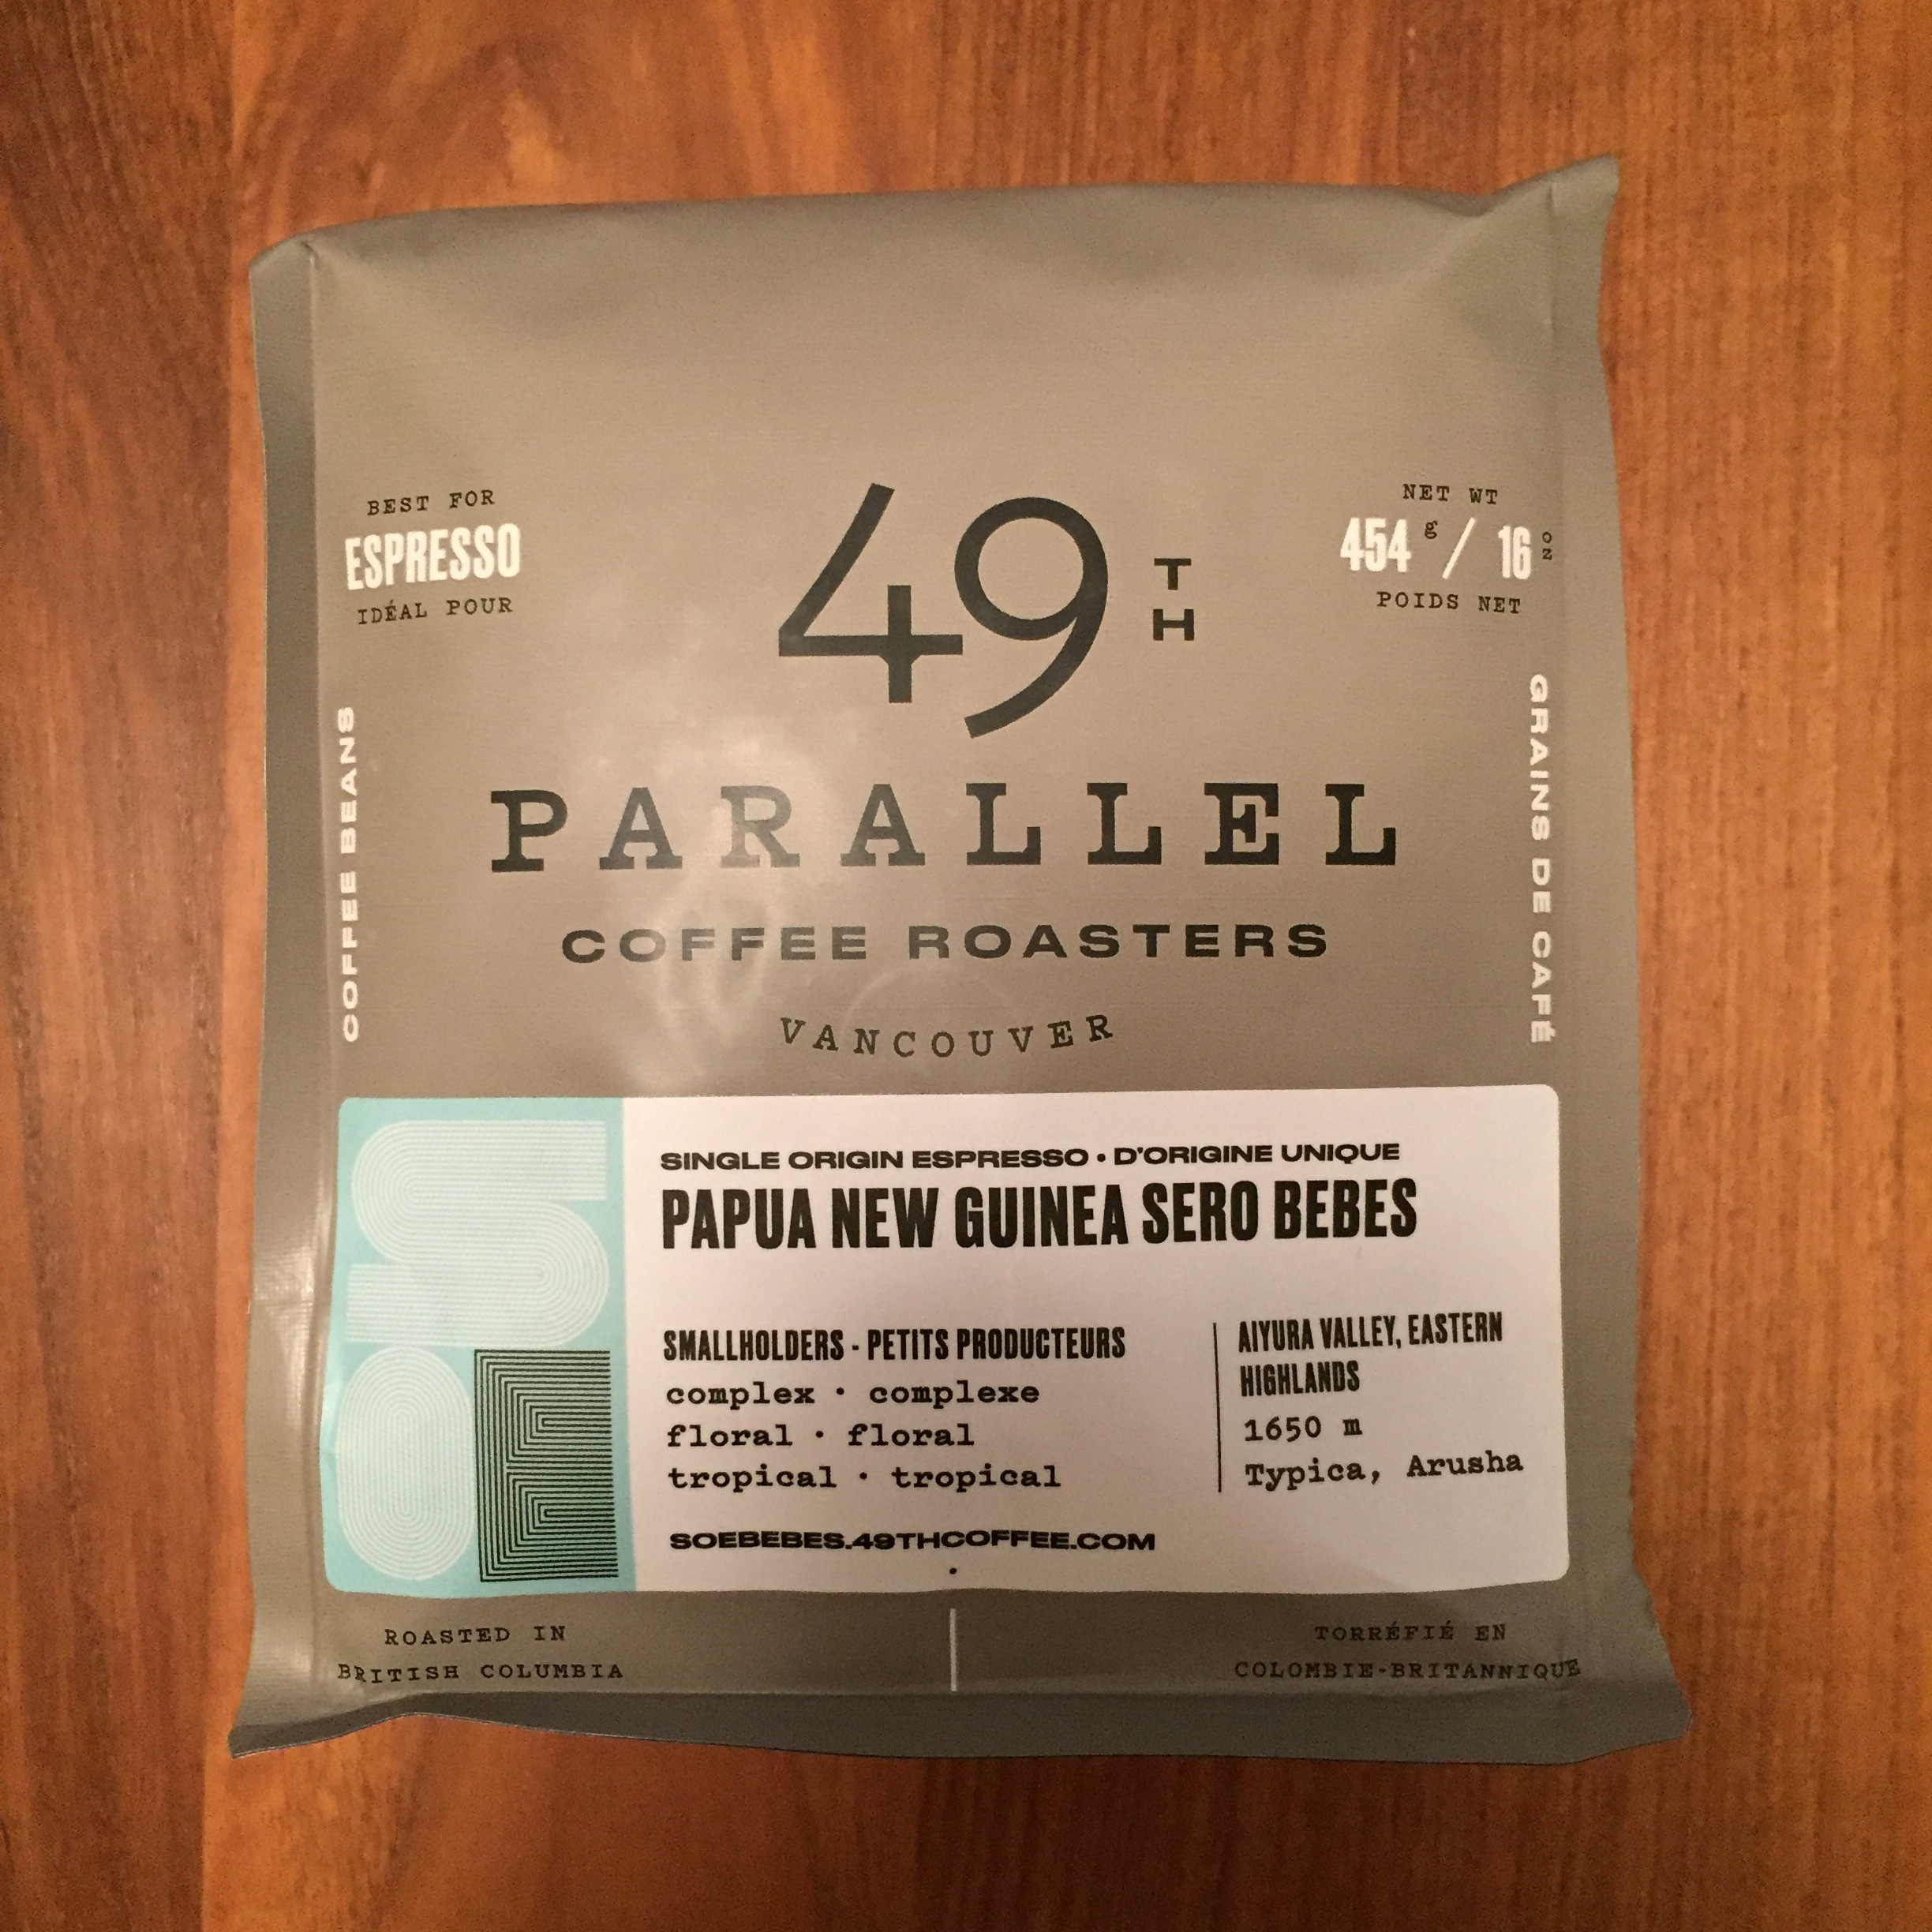 A great first experience with coffee from Papua New Guinea